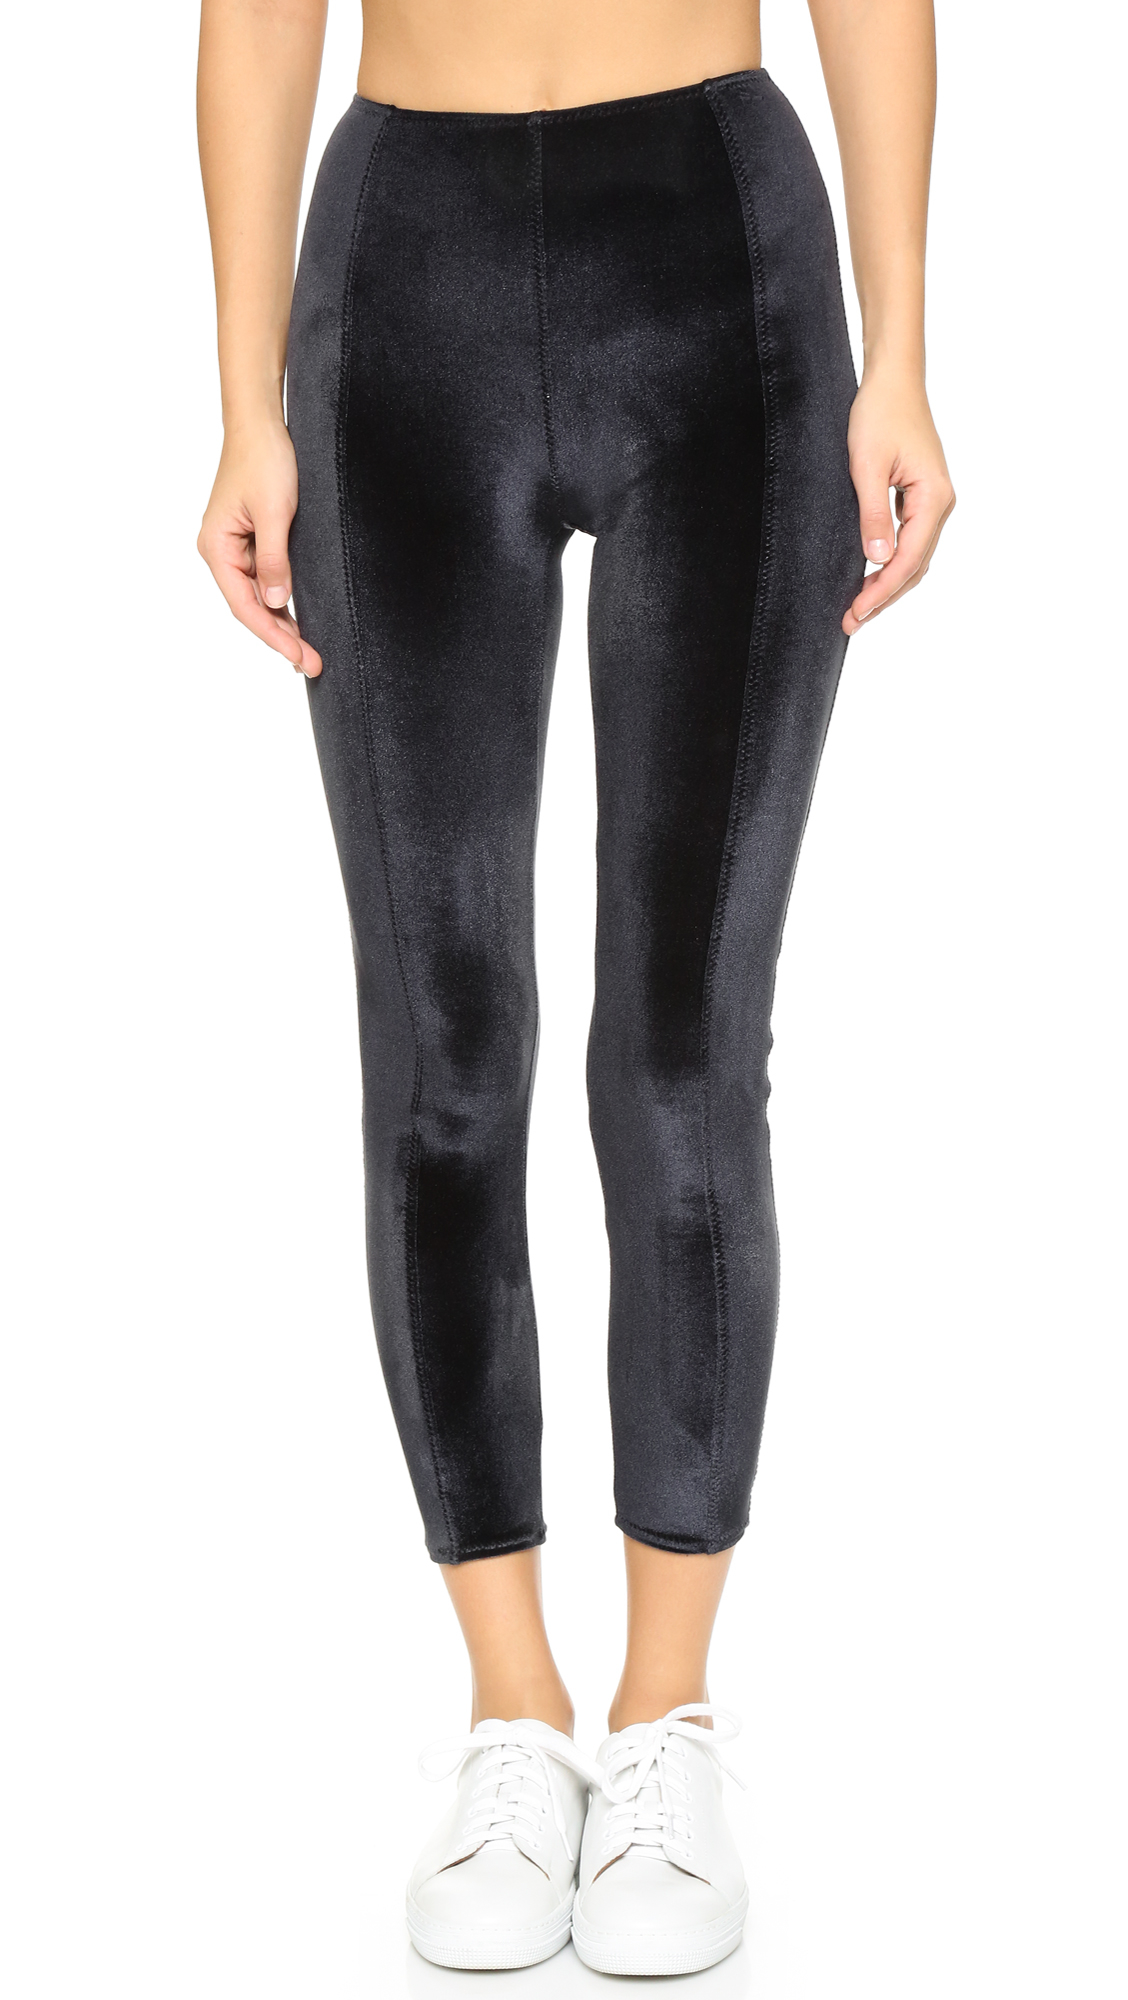 Are you looking for Black Velour Leggings Tbdress is a best place to buy Leggings. Here offers a fantastic collection of Black Velour Leggings, variety of styles, colors to suit you. All of items have the lowest price for you. So visit Tbdress now, you will have a super surprising!